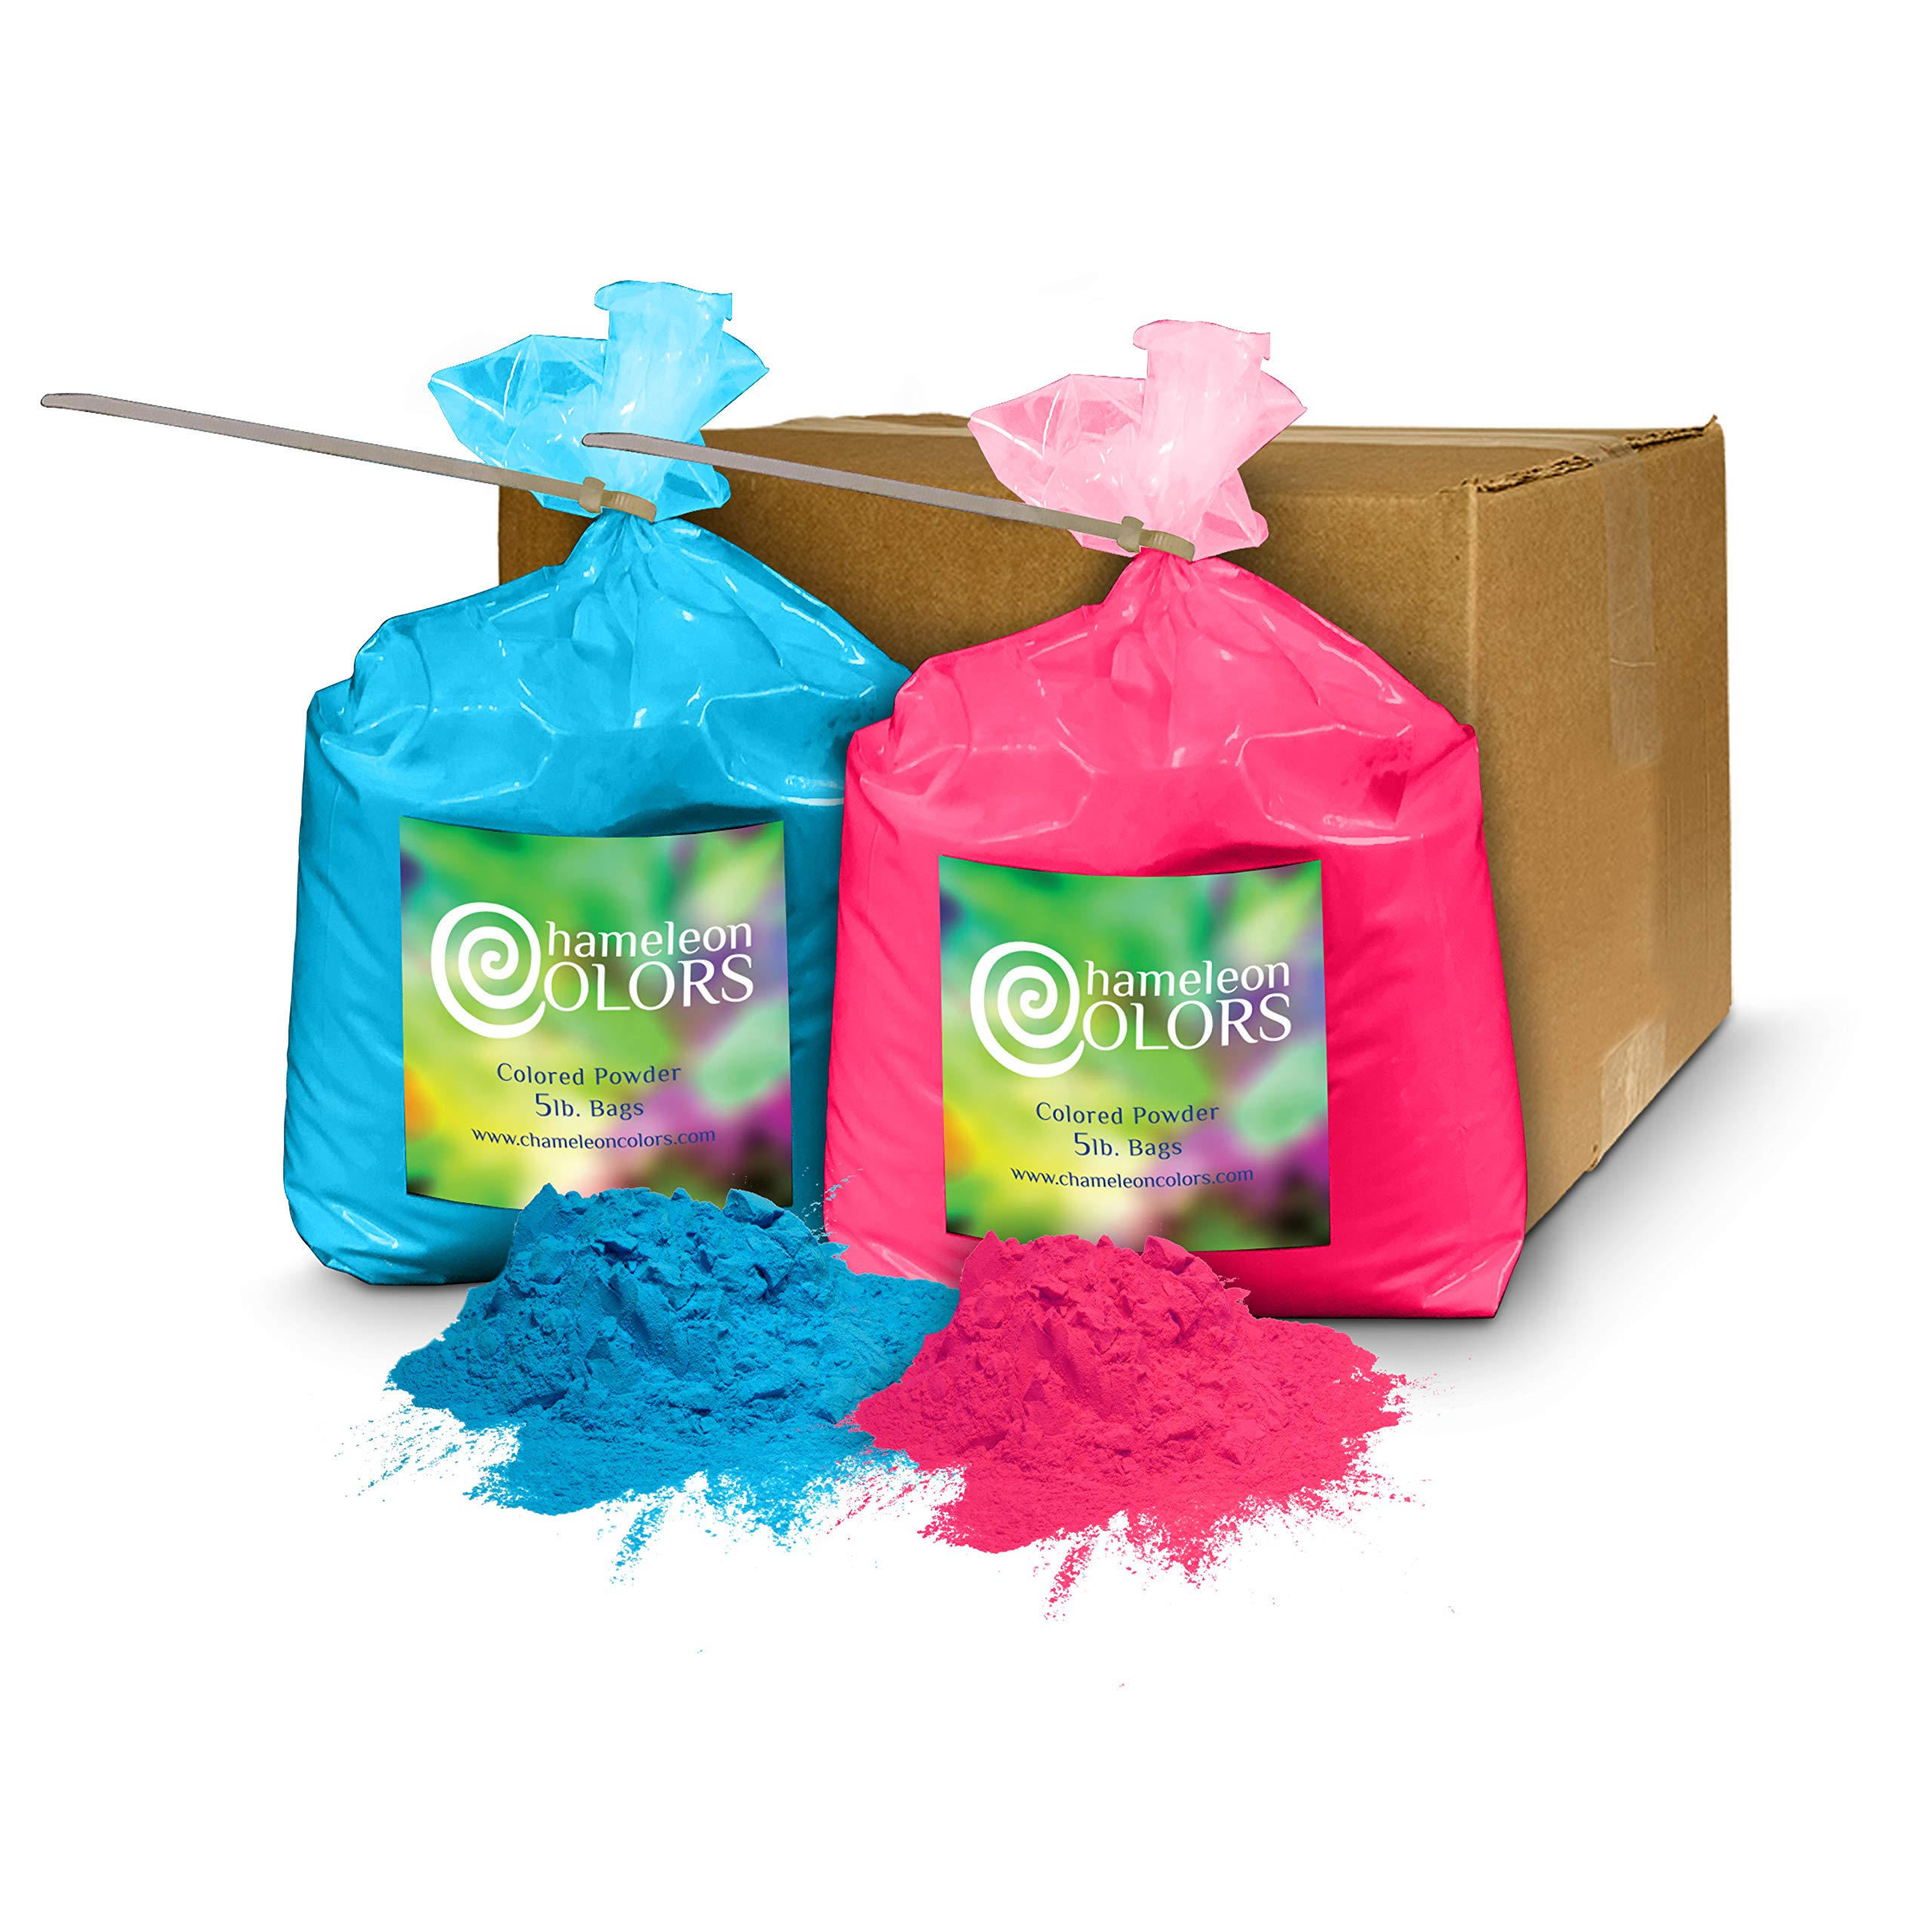 Holi Color Powder Gender Reveal by Chameleon Colors – 5lb Blue and 5lb Pink. Same Premium, Authentic Product Used for a Color Run, 5k, etc.